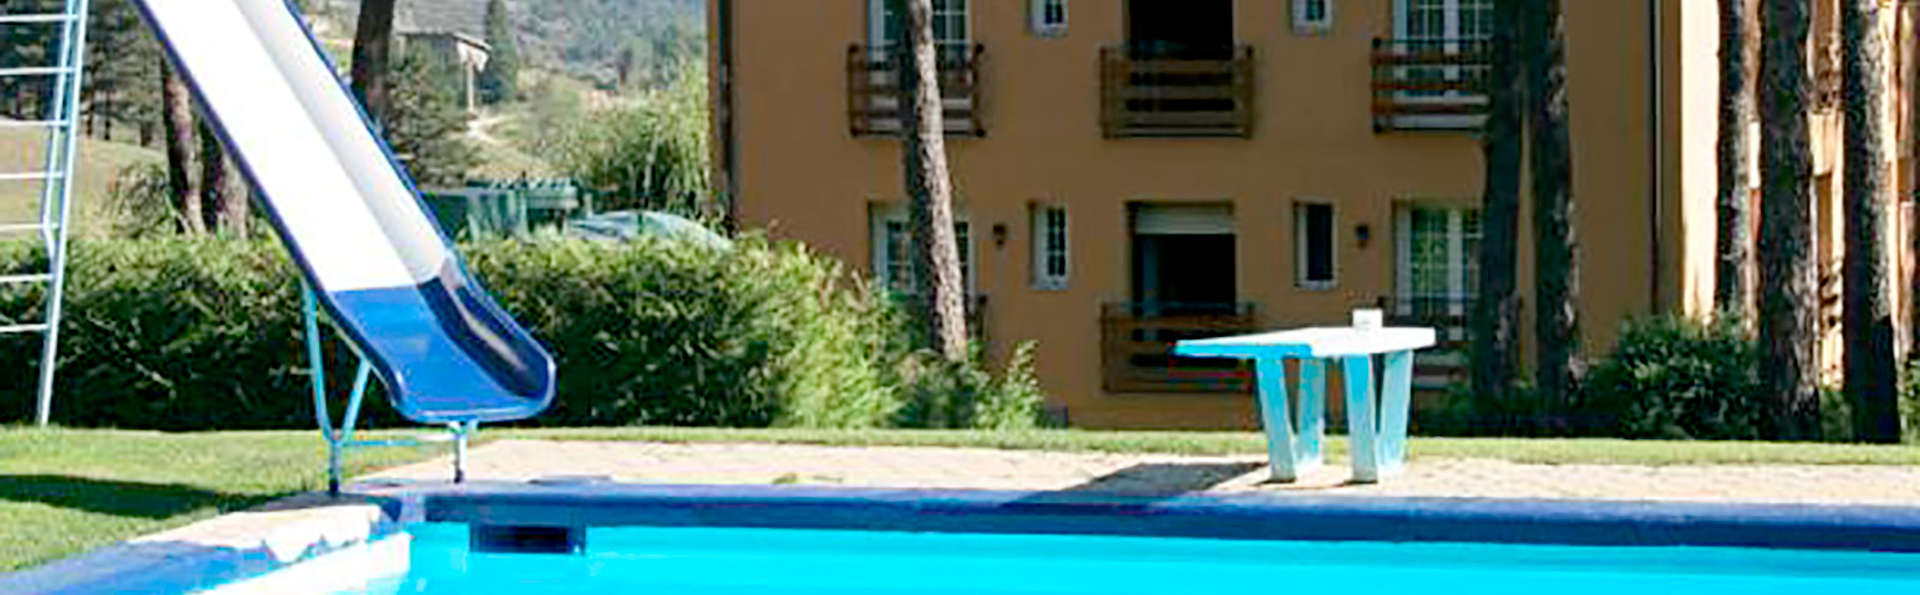 Hotel Roc Blanc - La Molina - Edit_Pool2.jpg